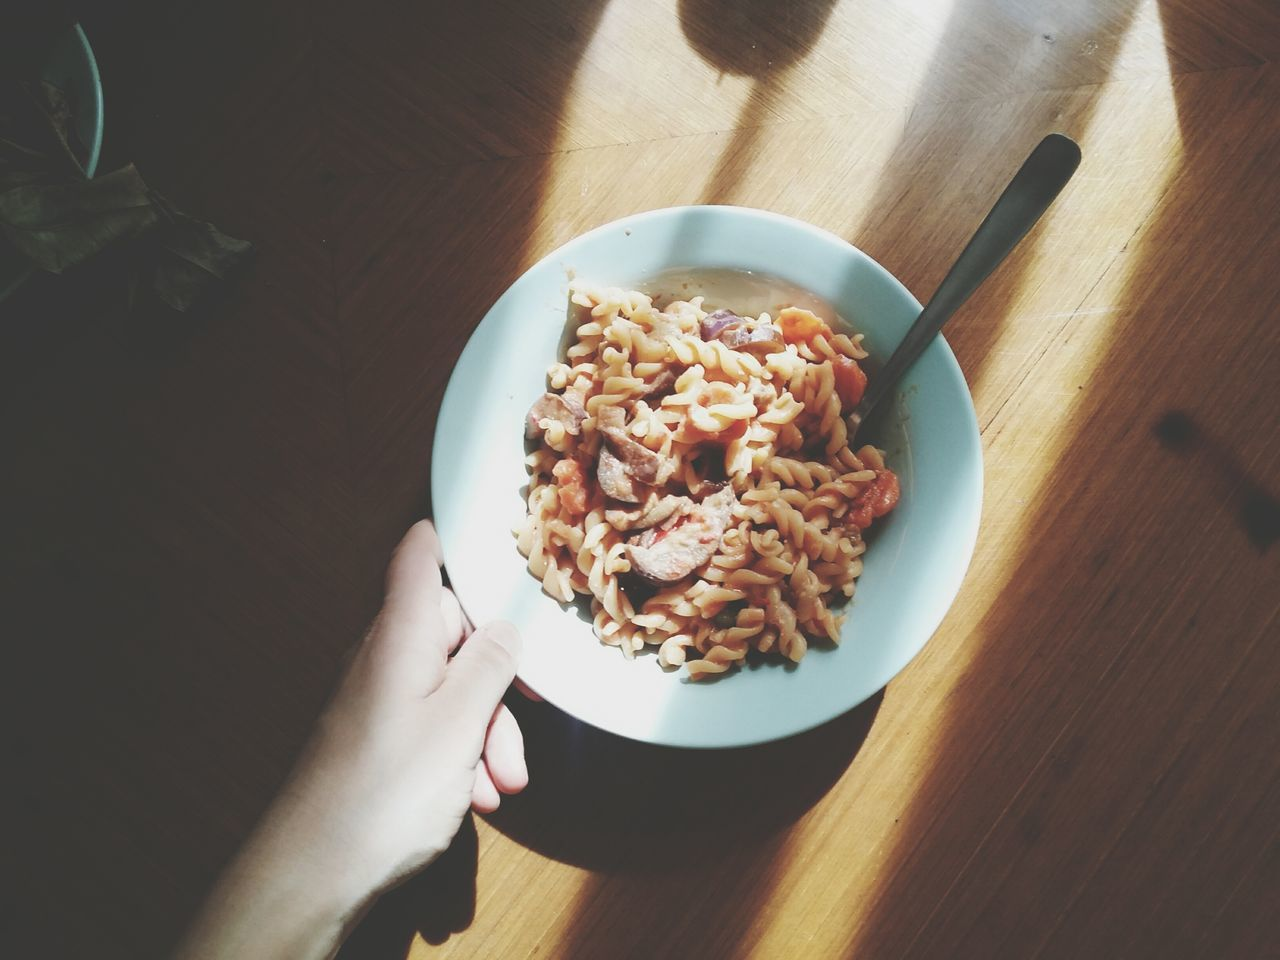 Close up of hand holding plate with pasta in sunlight